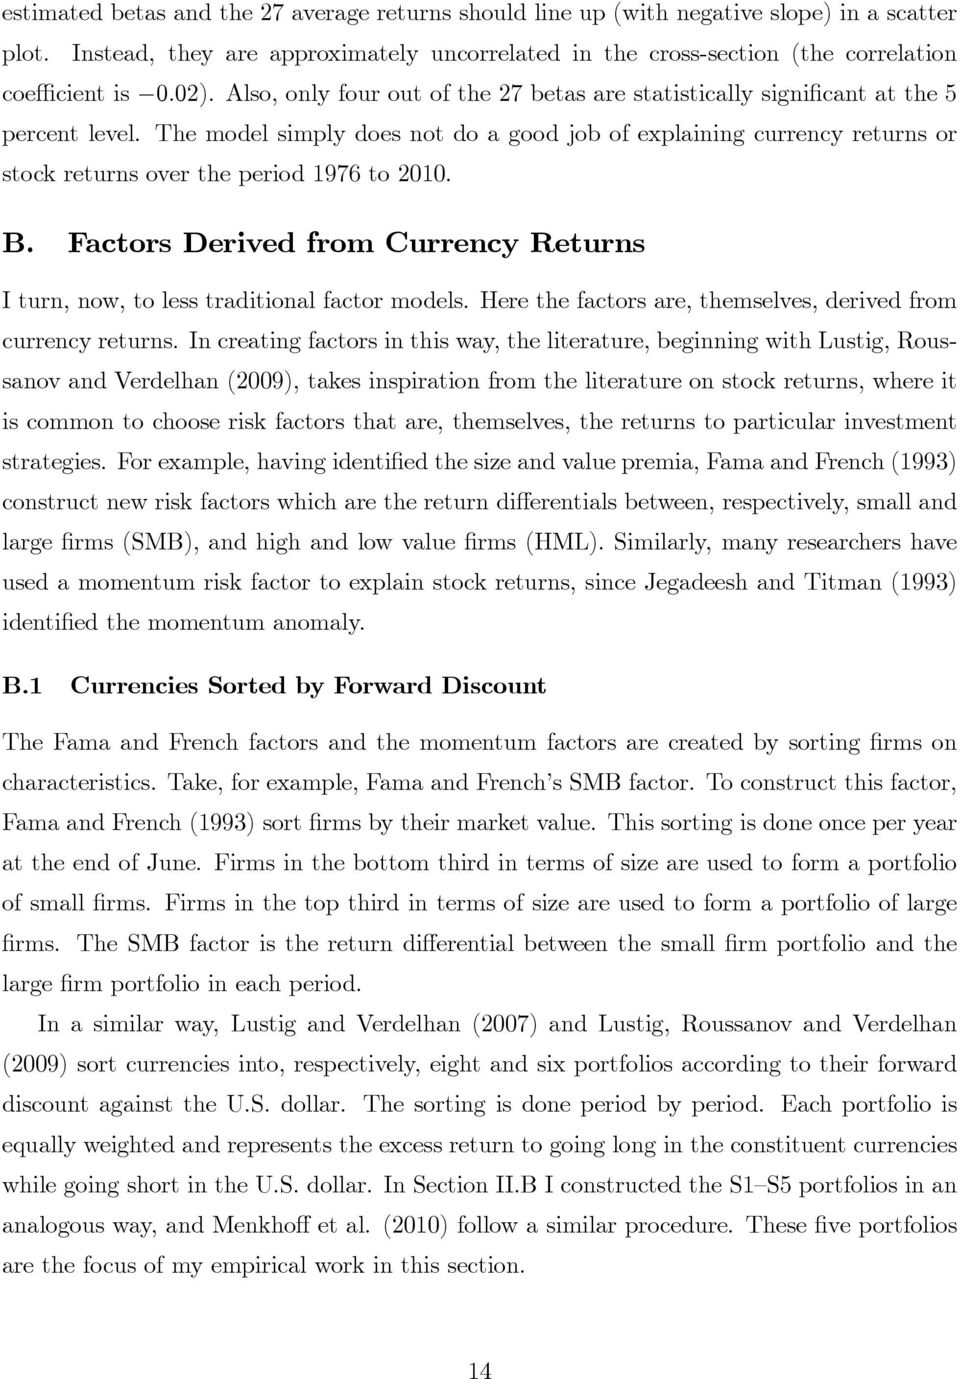 The model simply does not do a good job of explaining currency returns or stock returns over the period 1976 to 2010. B.